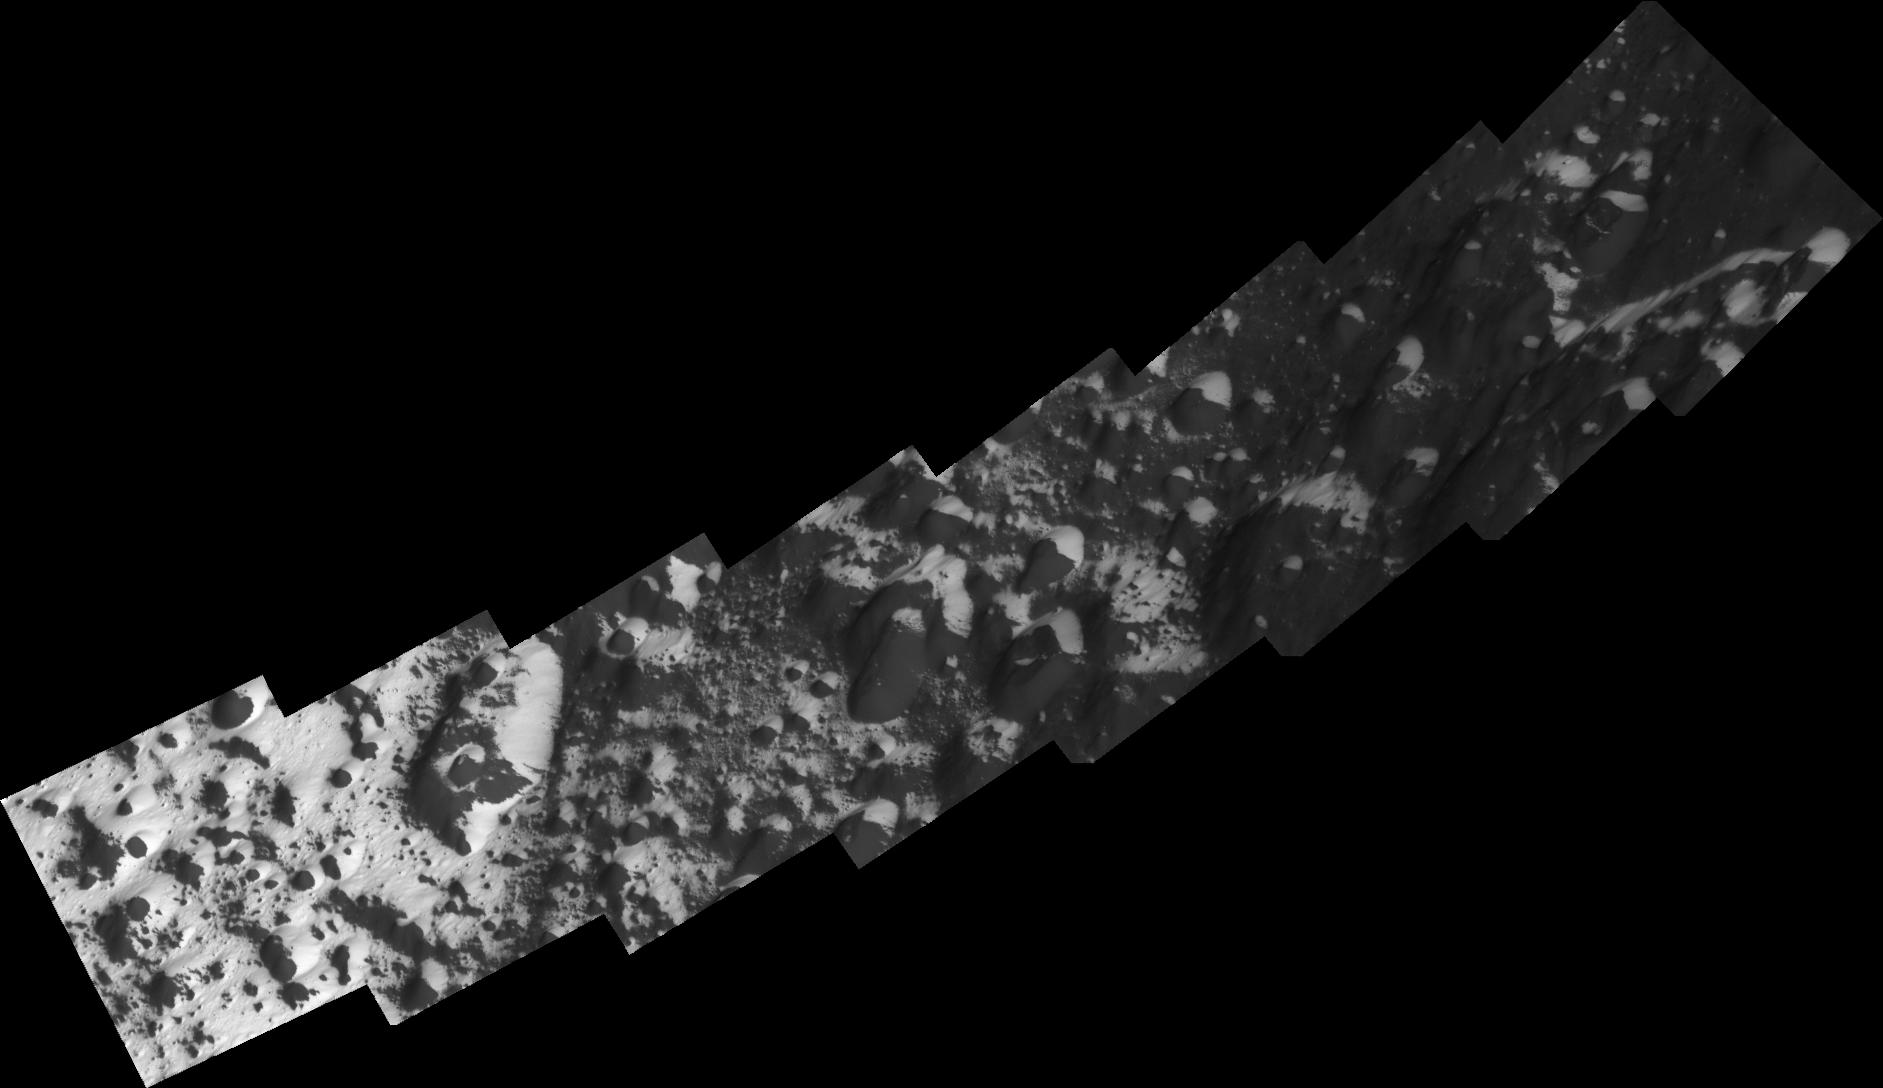 High-resolution images of the transition region from dark to bright terrain on Iapetus